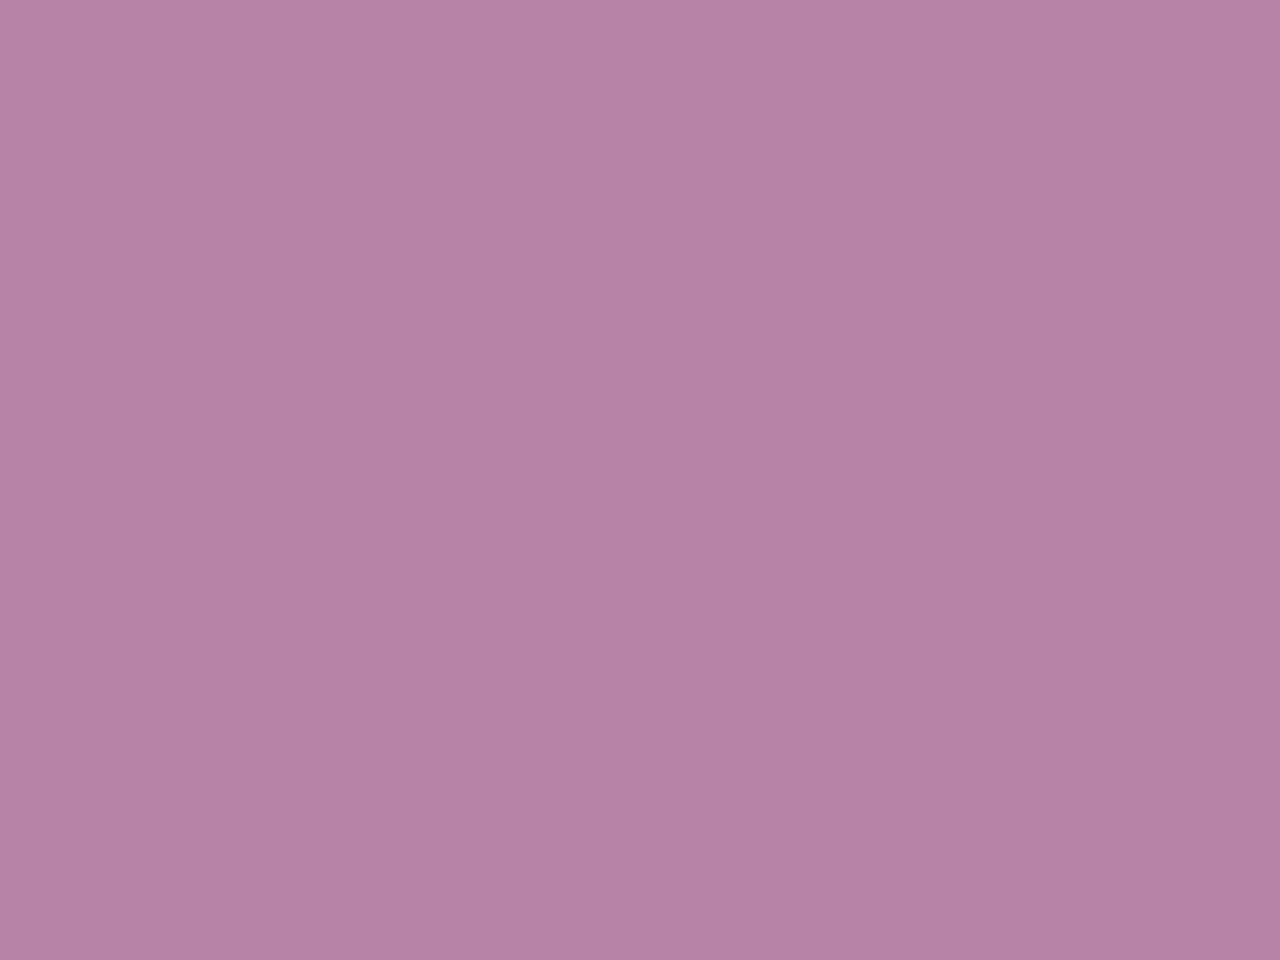 1280x960 Opera Mauve Solid Color Background